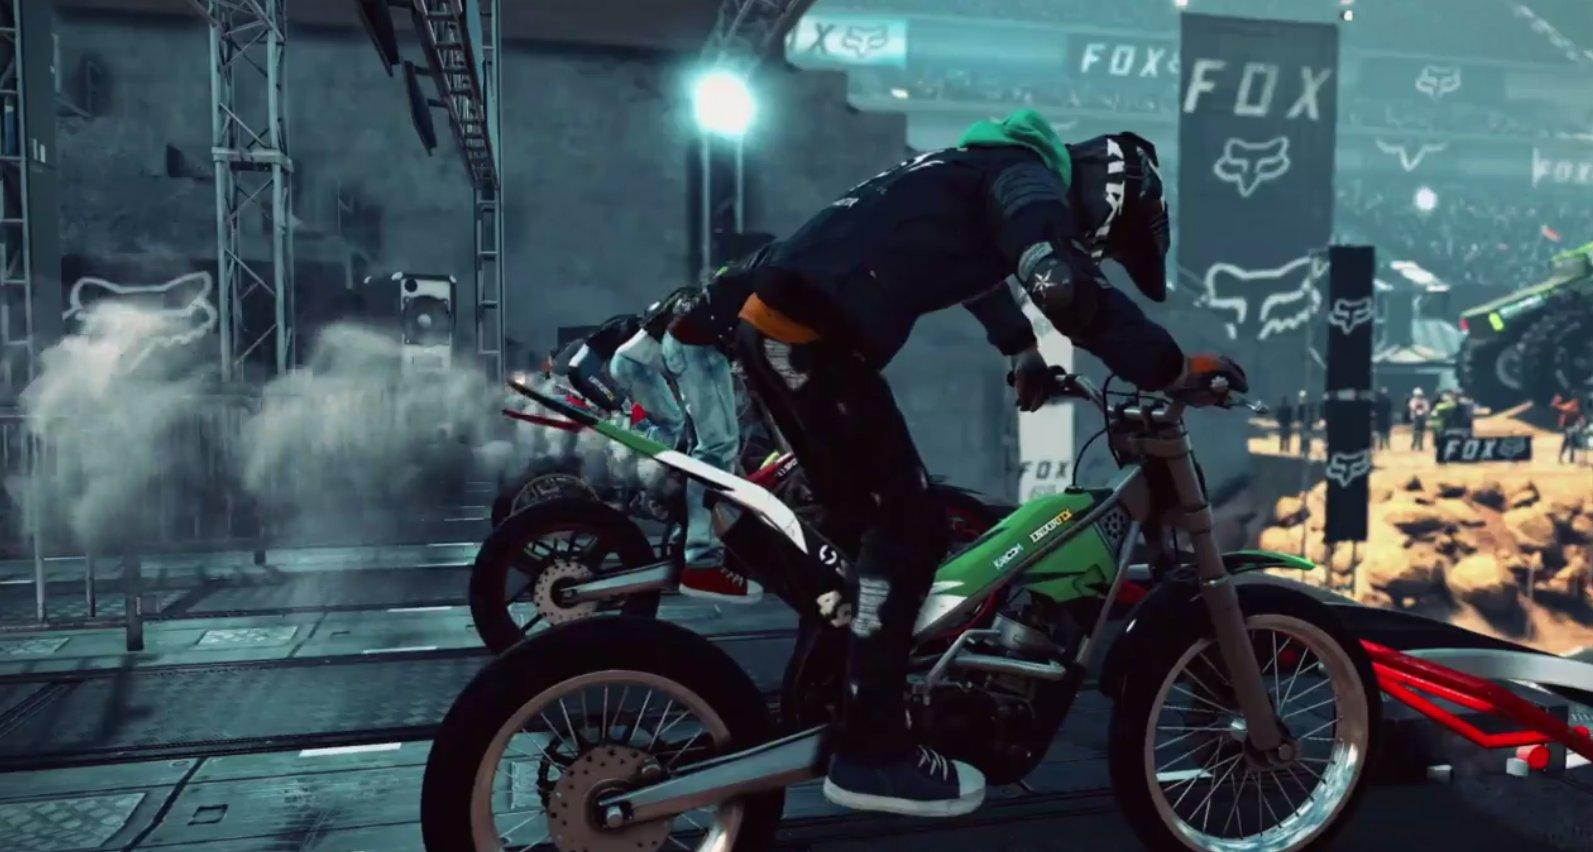 E3 2018: Trials Rising Crashes onto PS4 Next Year